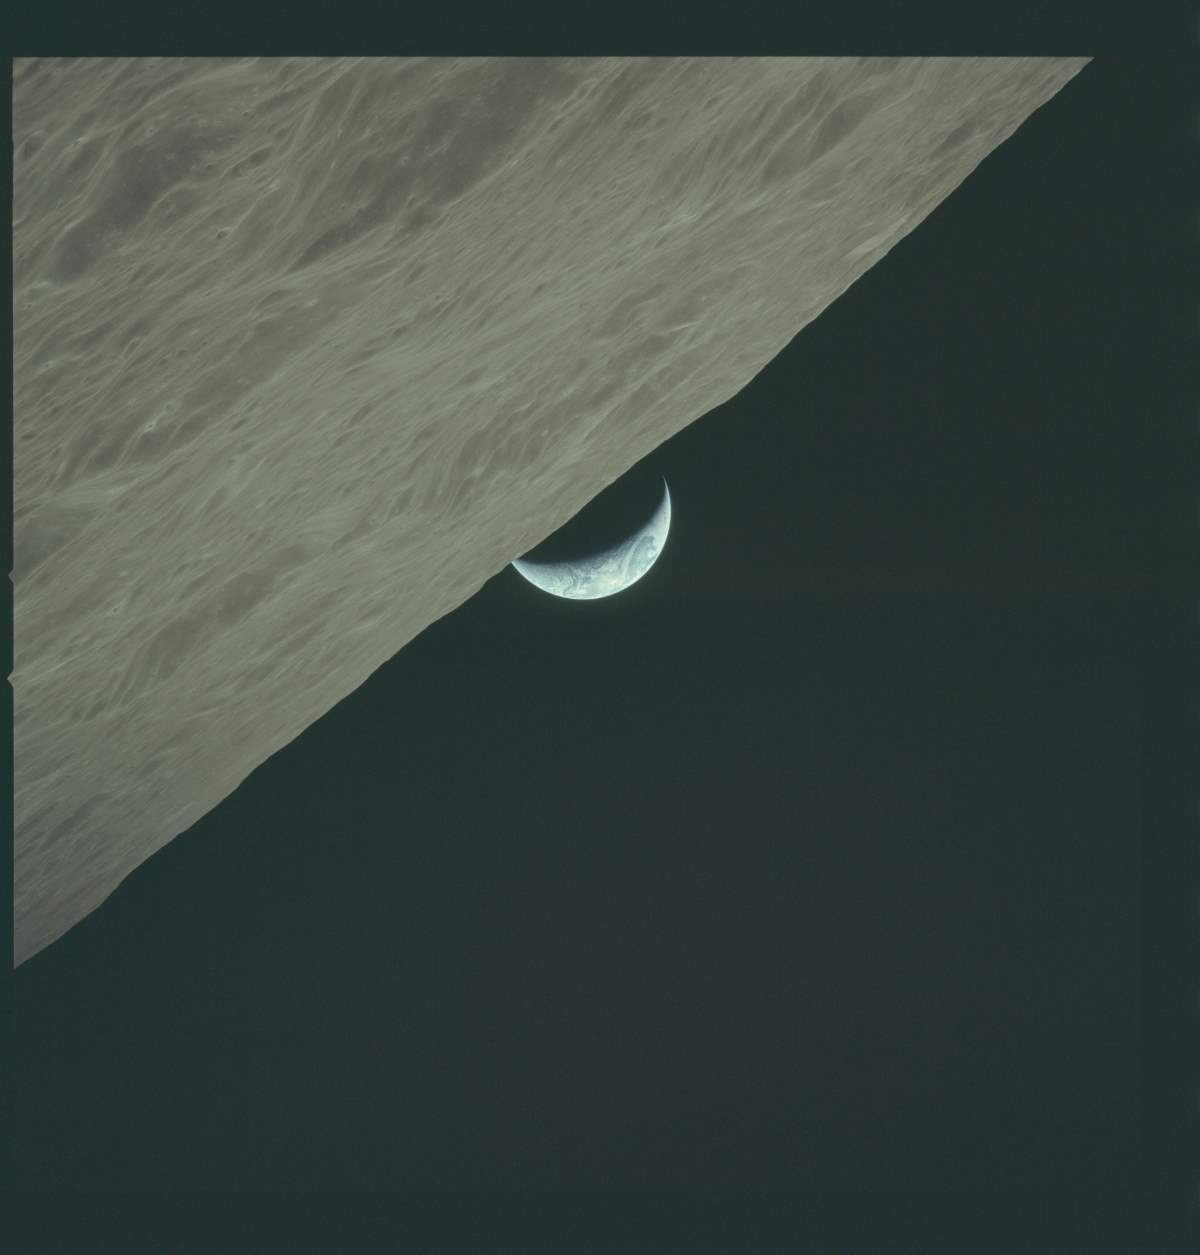 AS17-152-23274 Apollo 17 Hasselblad image